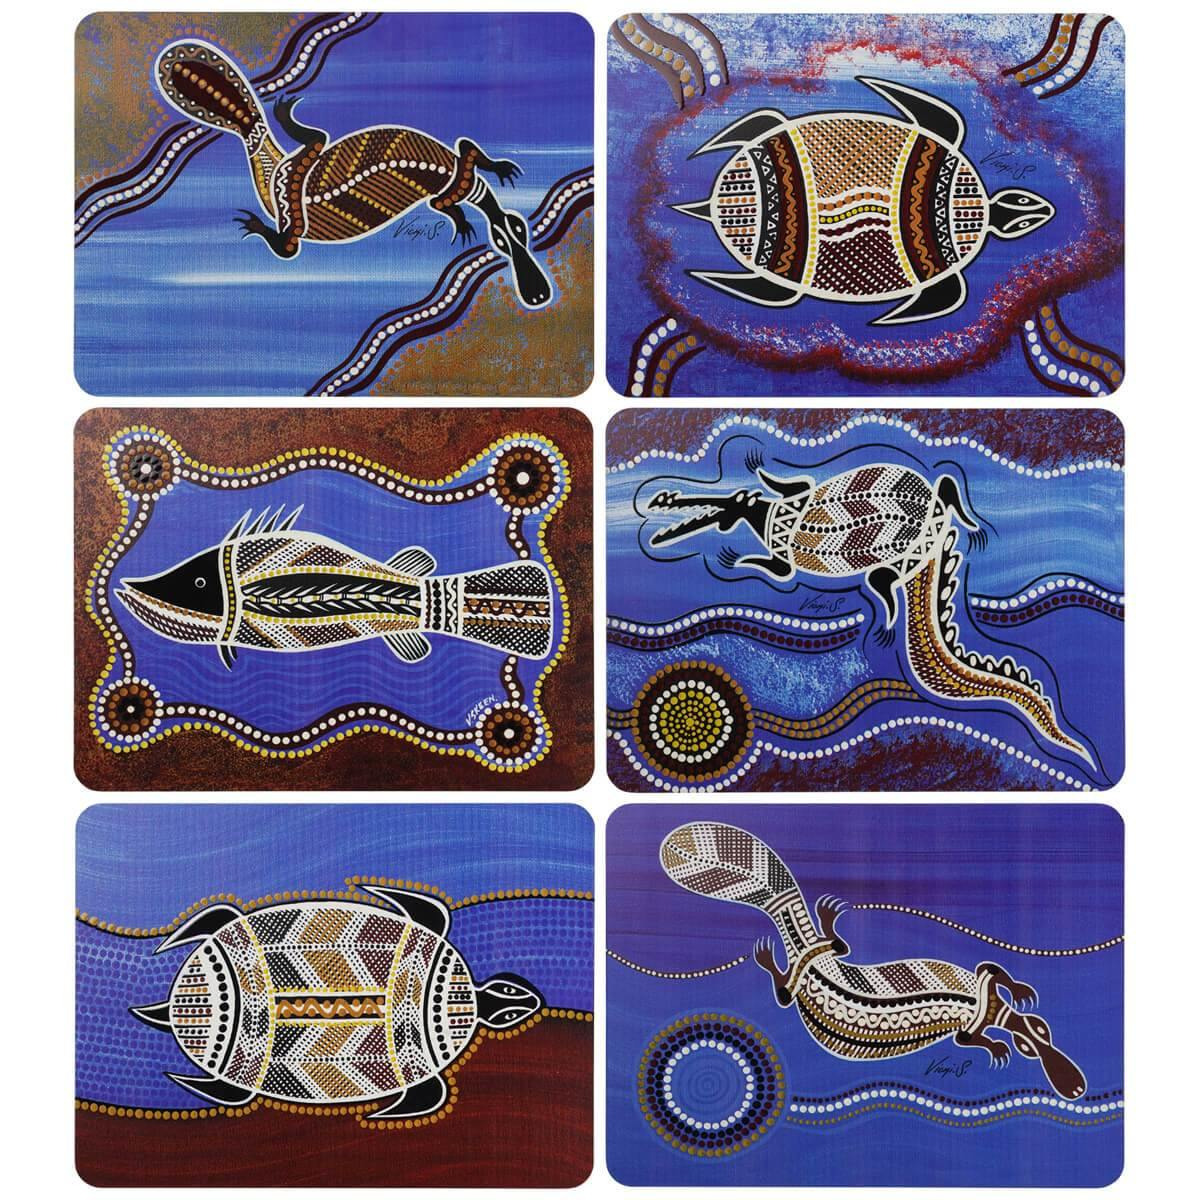 Australian Art Placemats Viki Skeen | Set of 6